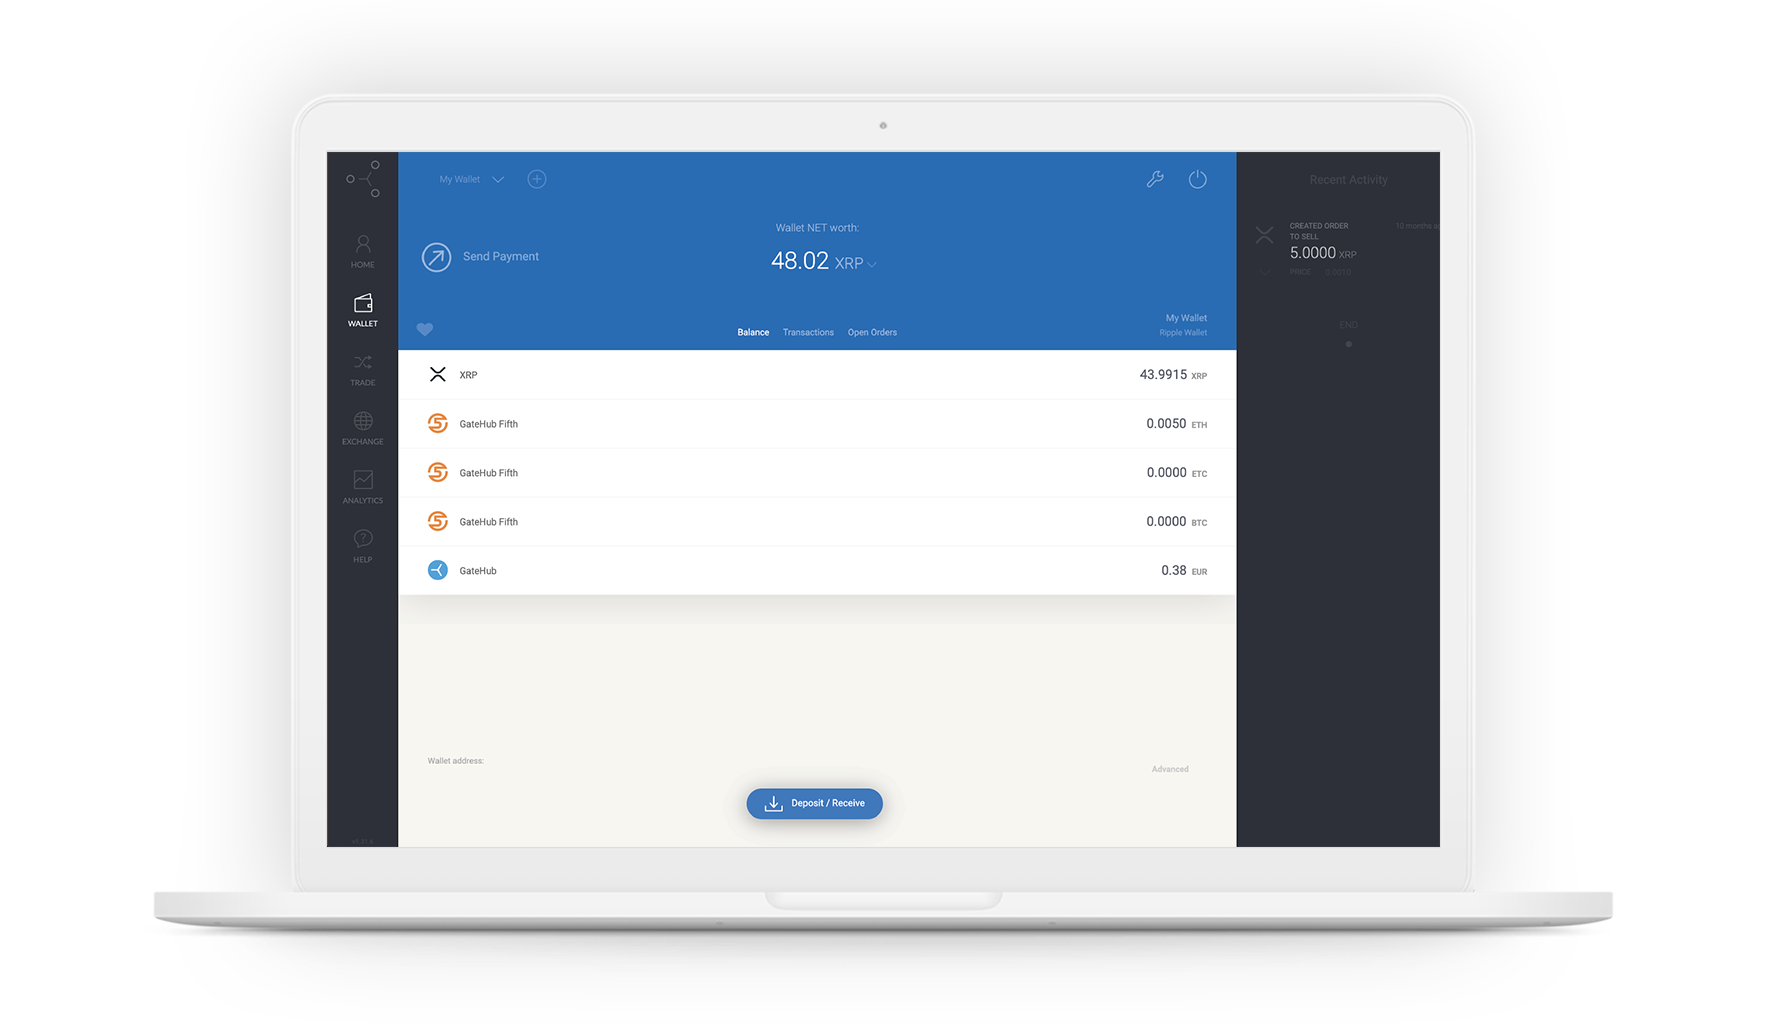 GateHub wallet